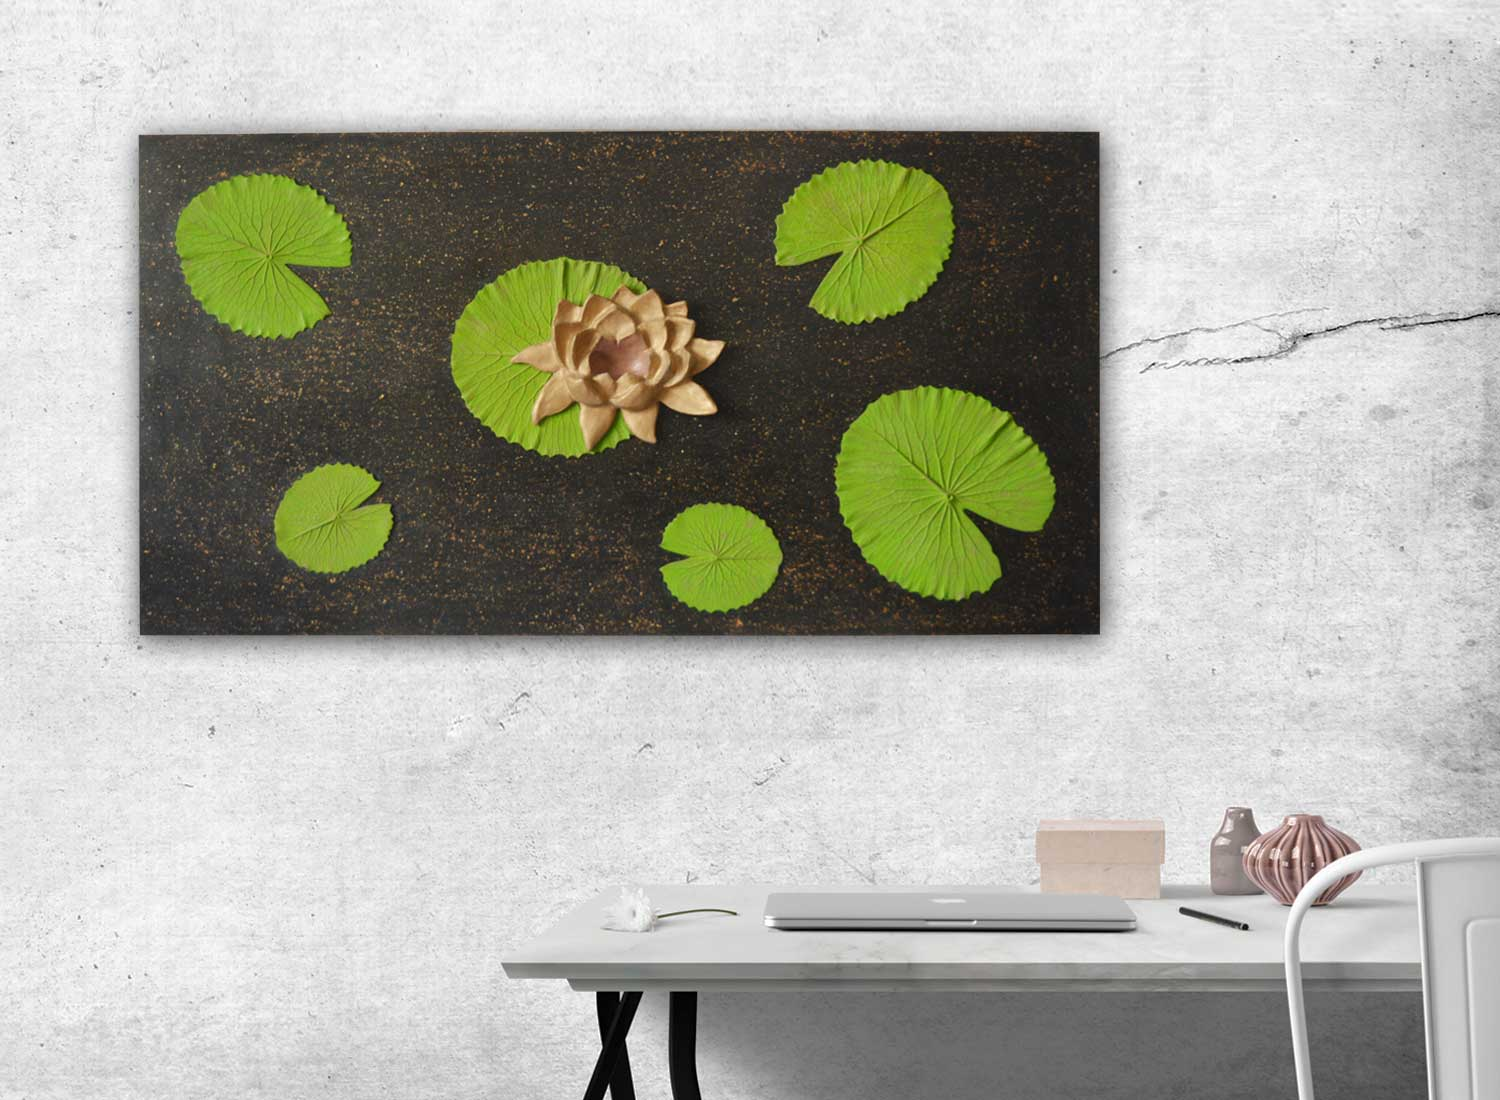 Lotus Wall Decor | Lotus Pond Wall Art | Greymode